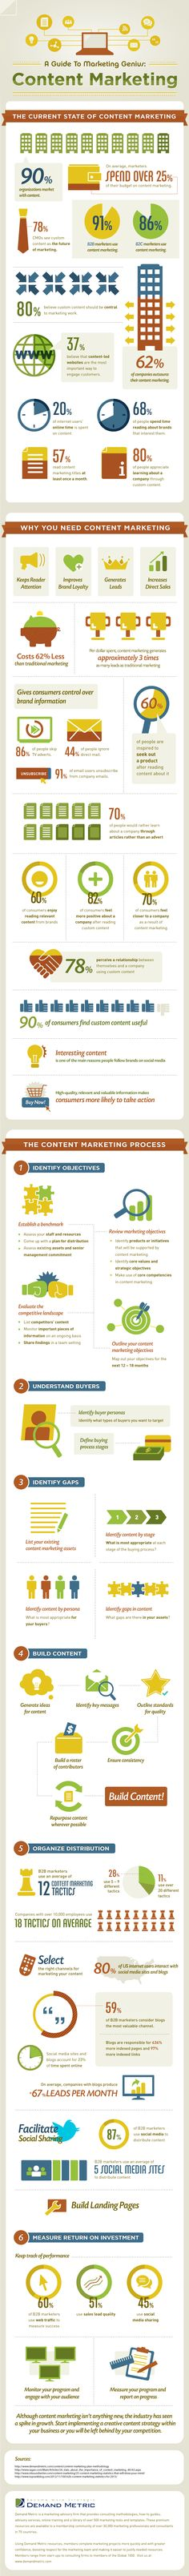 beginners guide to content marketing infographic A Beginners Guide to Content Marketing